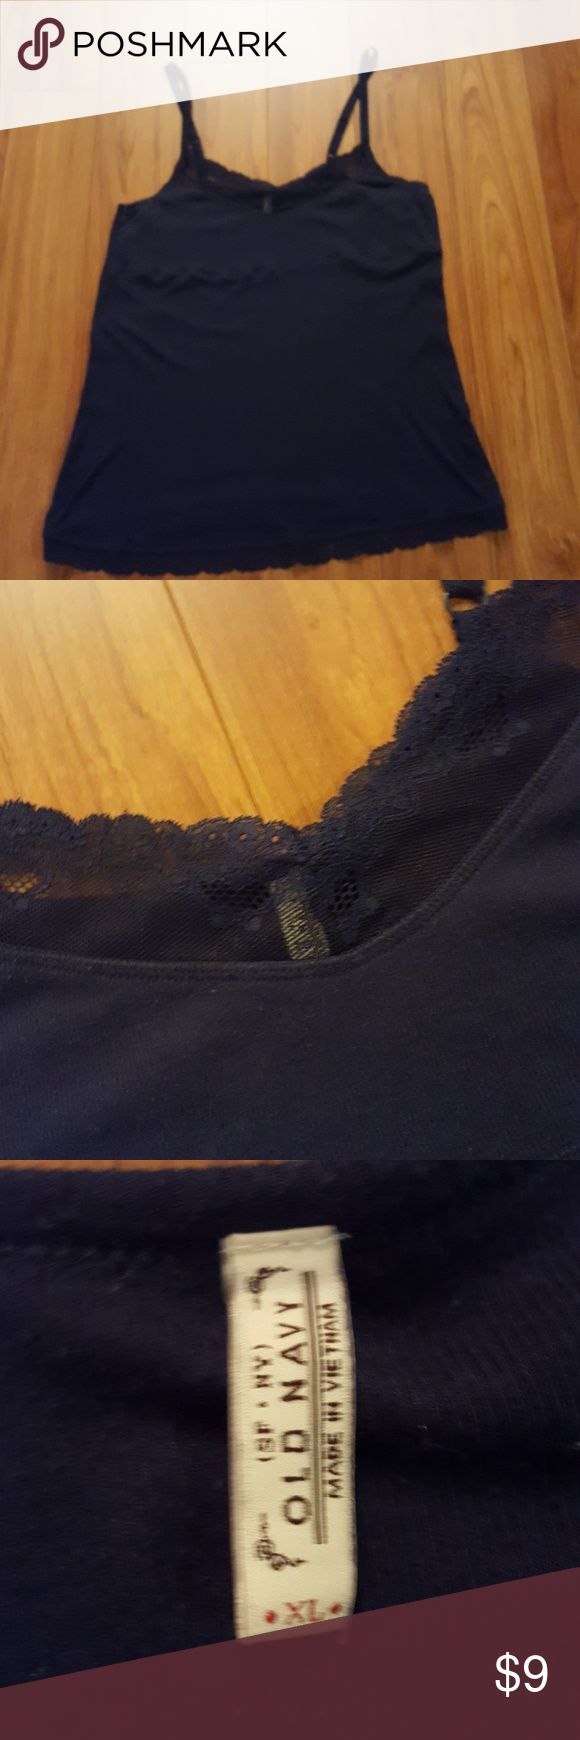 XL OLD NAVY CAMI IN NAVY BLUE WITH LACE This XL Old Navy navy blue camo had lace across the bodice. Stretchy and pretty! Great under your newest fall additions. Smoke free home . Washed in cold water and hung up to dry.  In really great condition. Old Navy Tops Camisoles